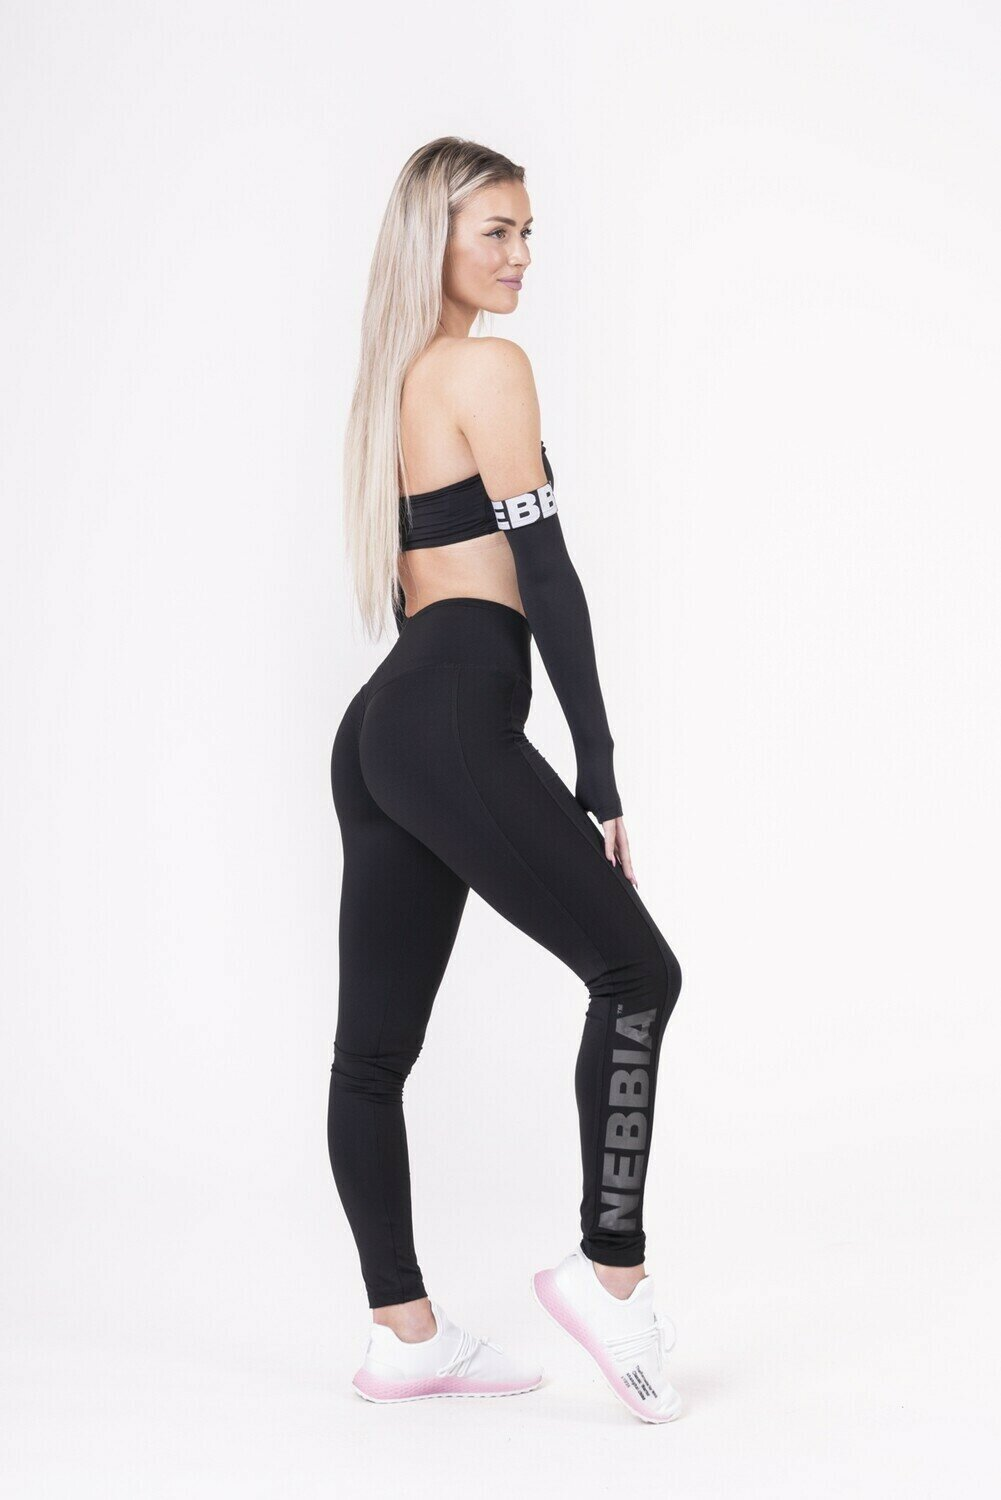 НАРУКАВНИКИ NEBBIA REBEL SPORT SLEEVES 696